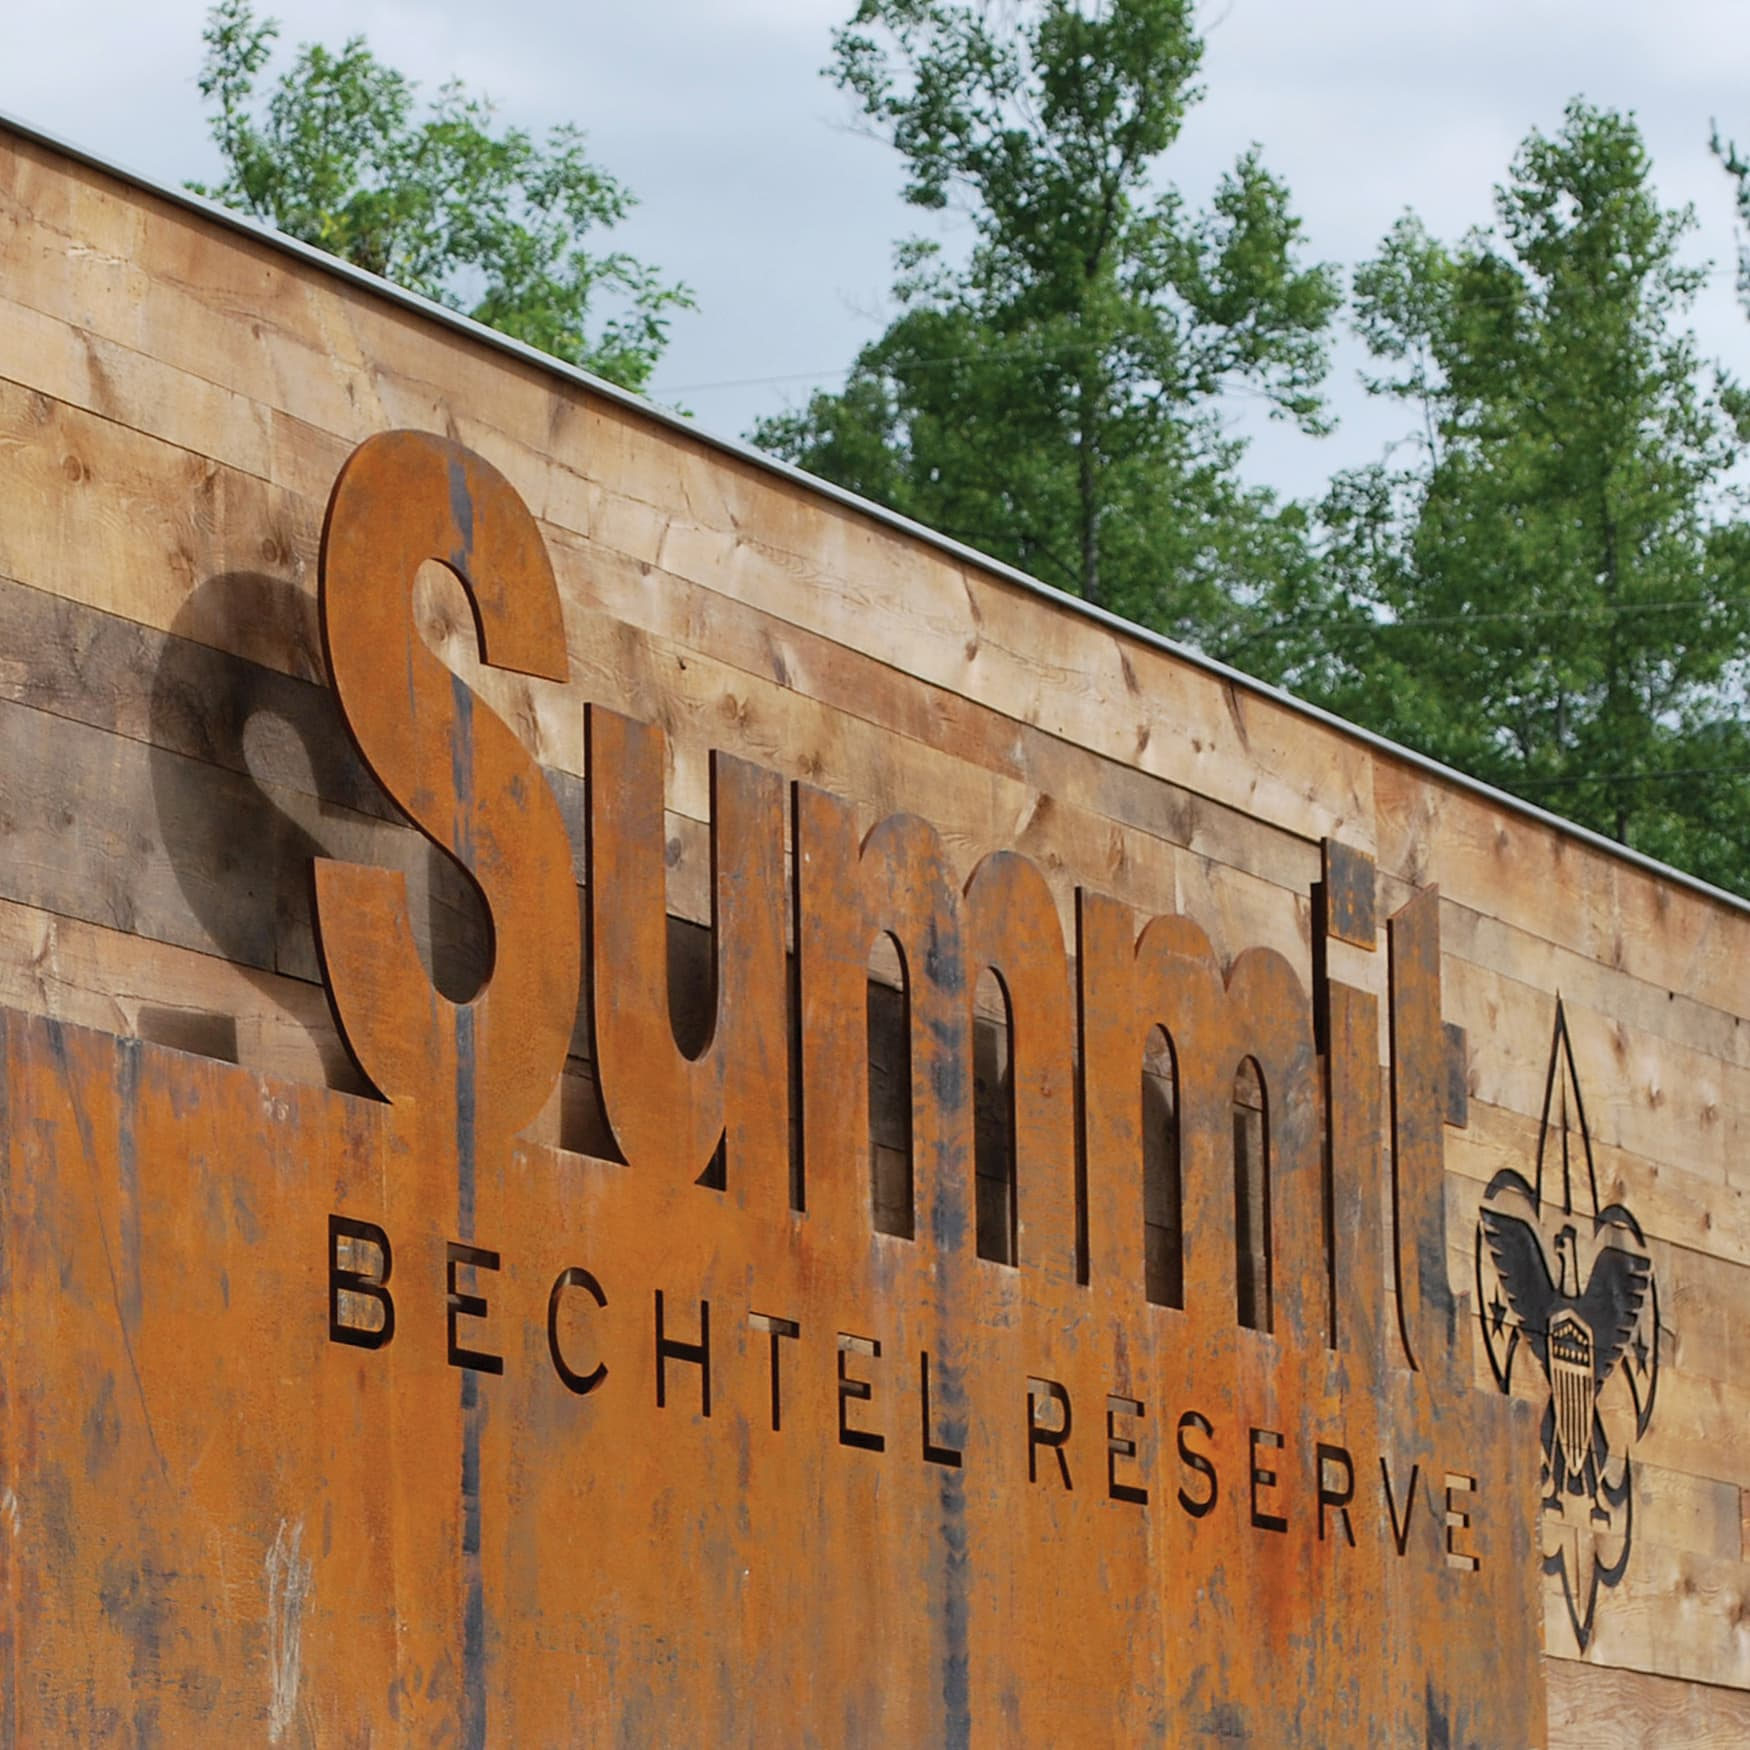 Corten and wood Summit Bechtel Reserve monument signage in West Virginia